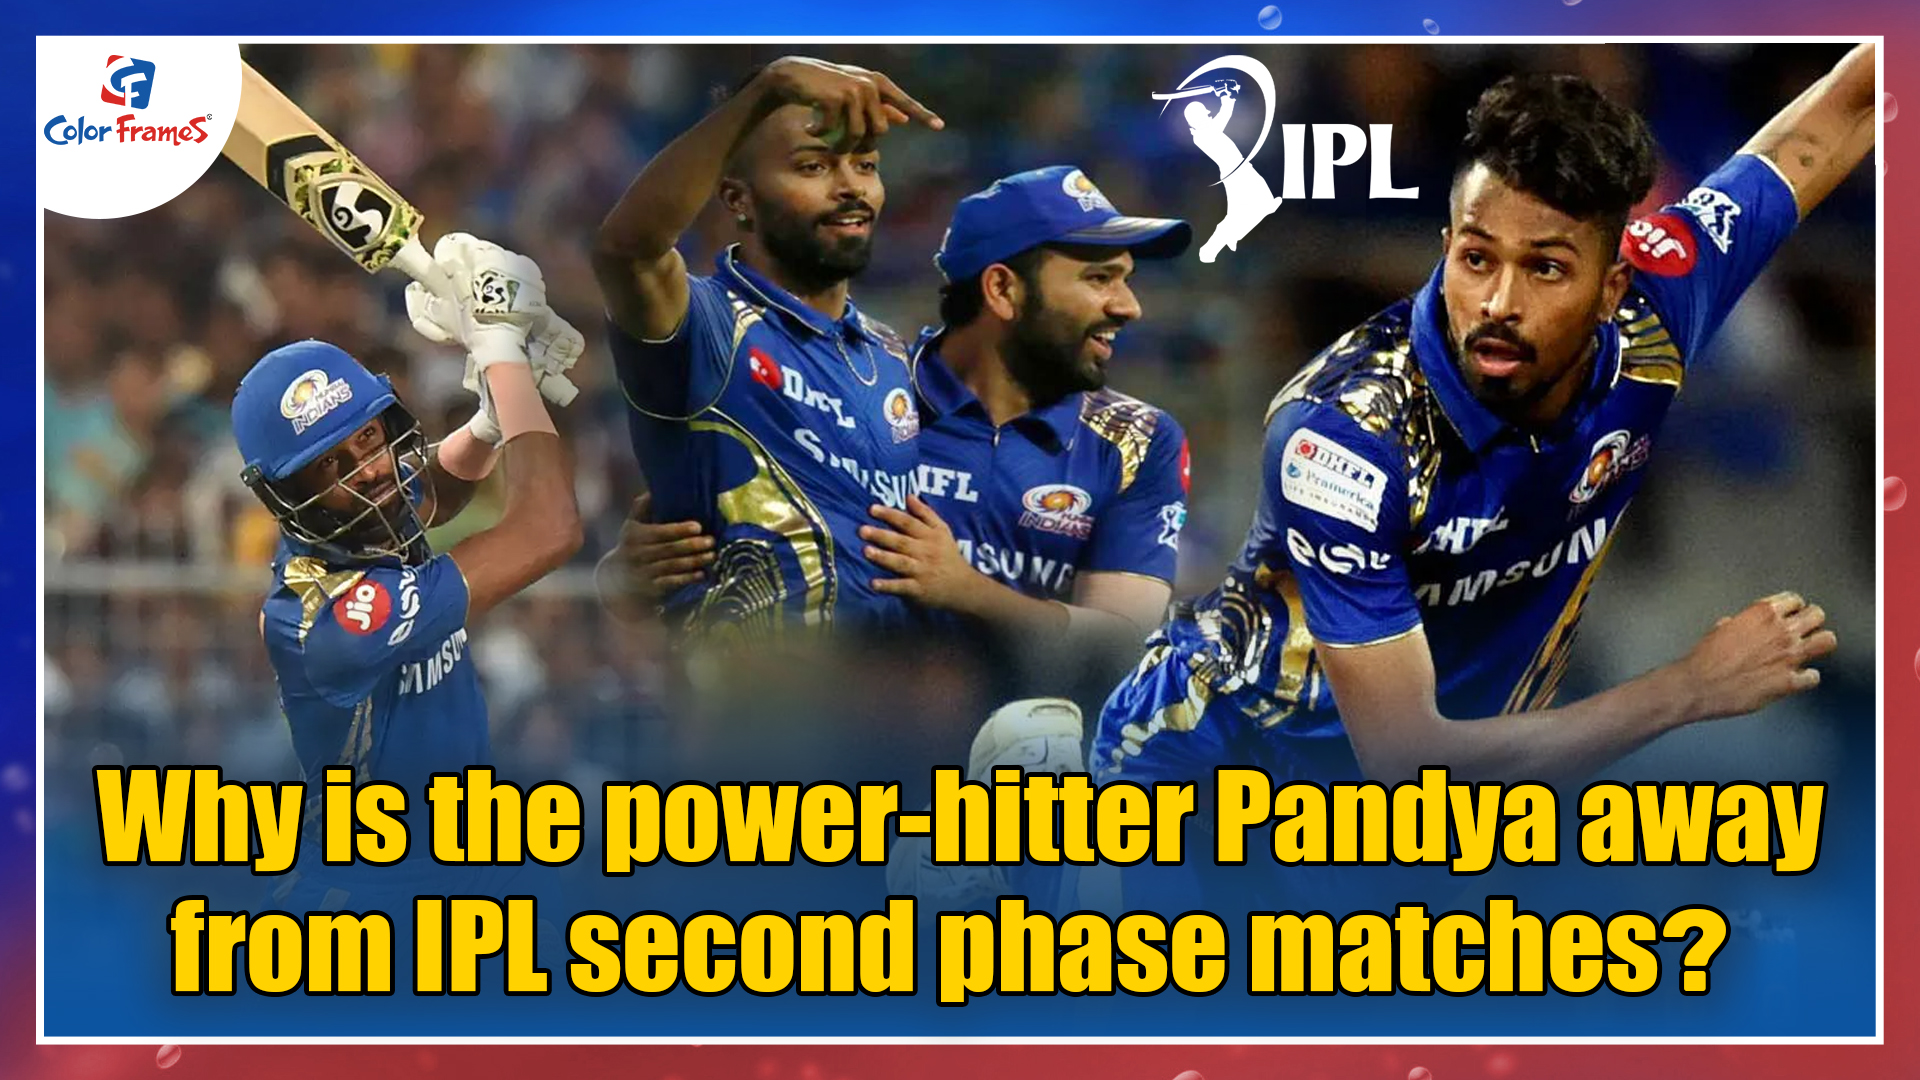 Why is the power-hitter Pandya away from IPL second phase matches?